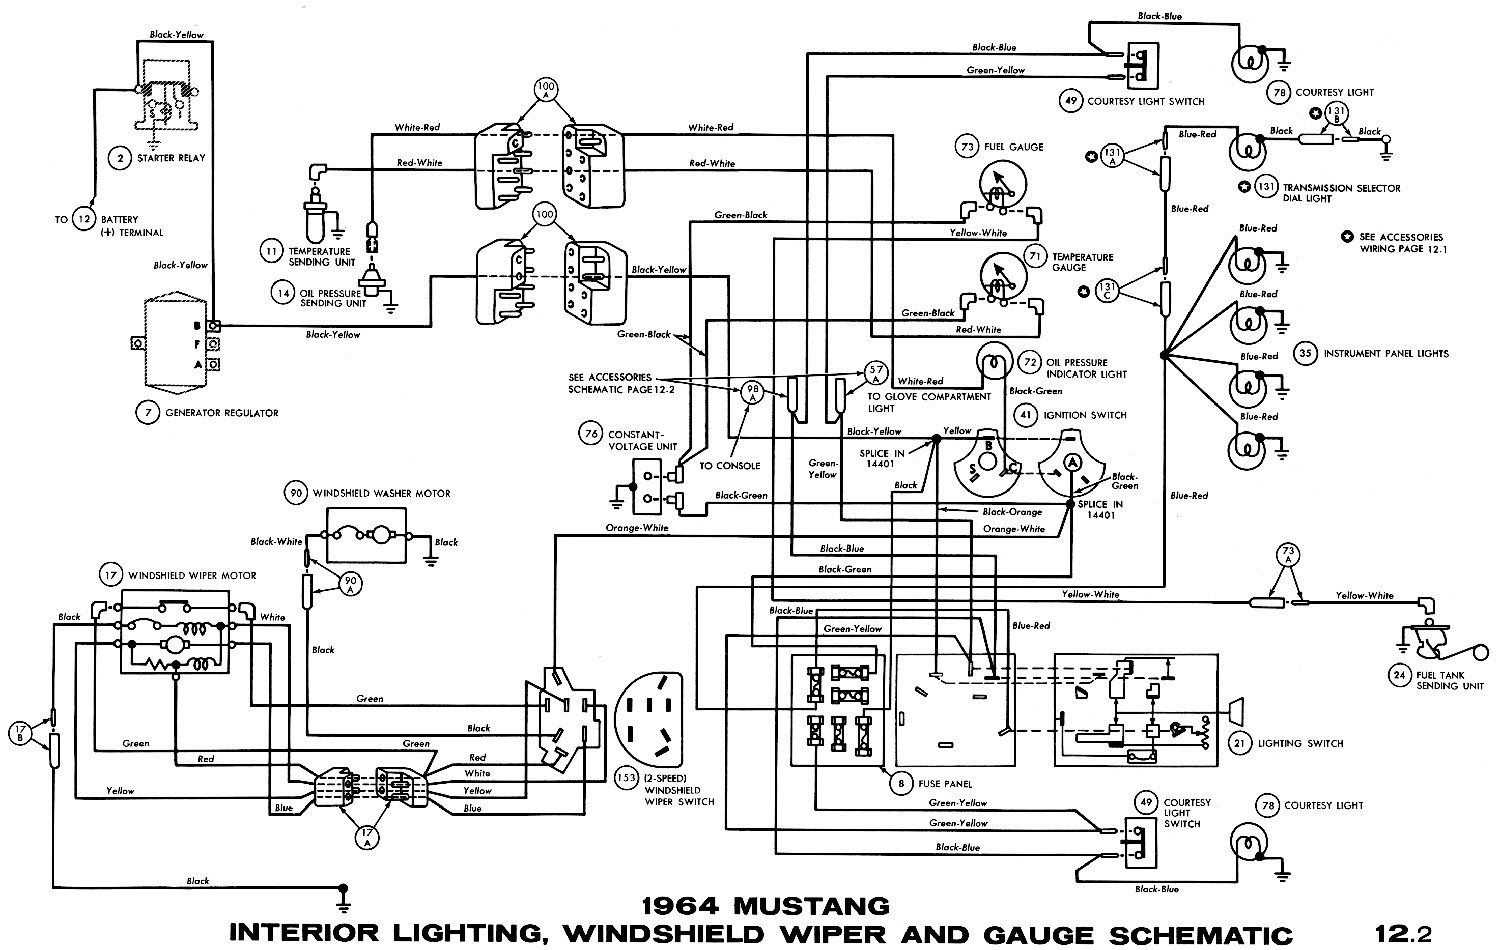 99 Lexus Gs300 Ignition Coil Wiring Diagram Wiring Diagram Understand Understand Lionsclubviterbo It